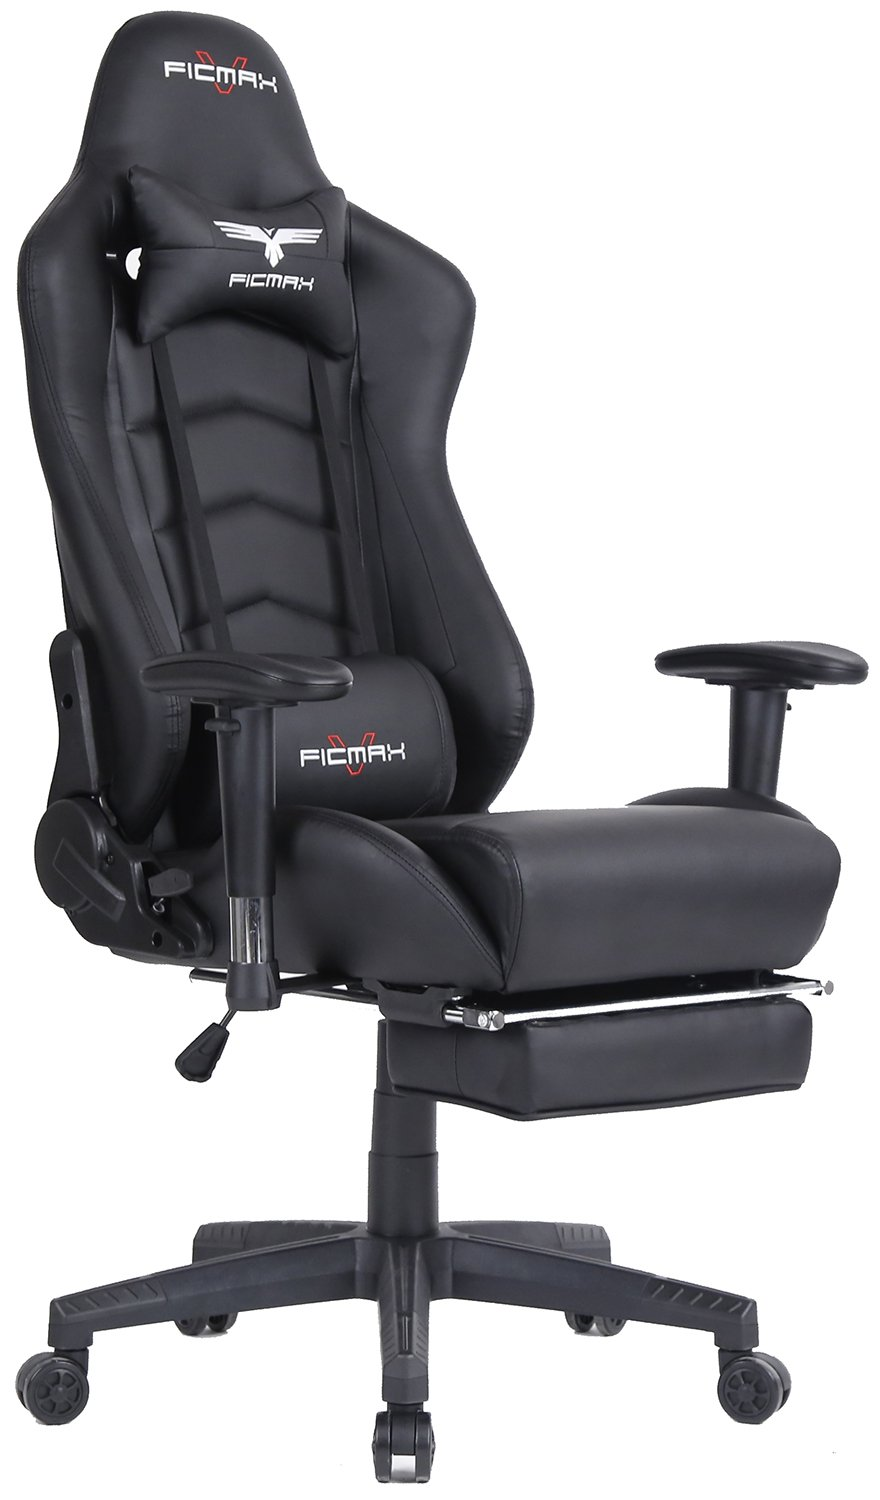 amazon com ficmax ergonomic high back large size office desk chair